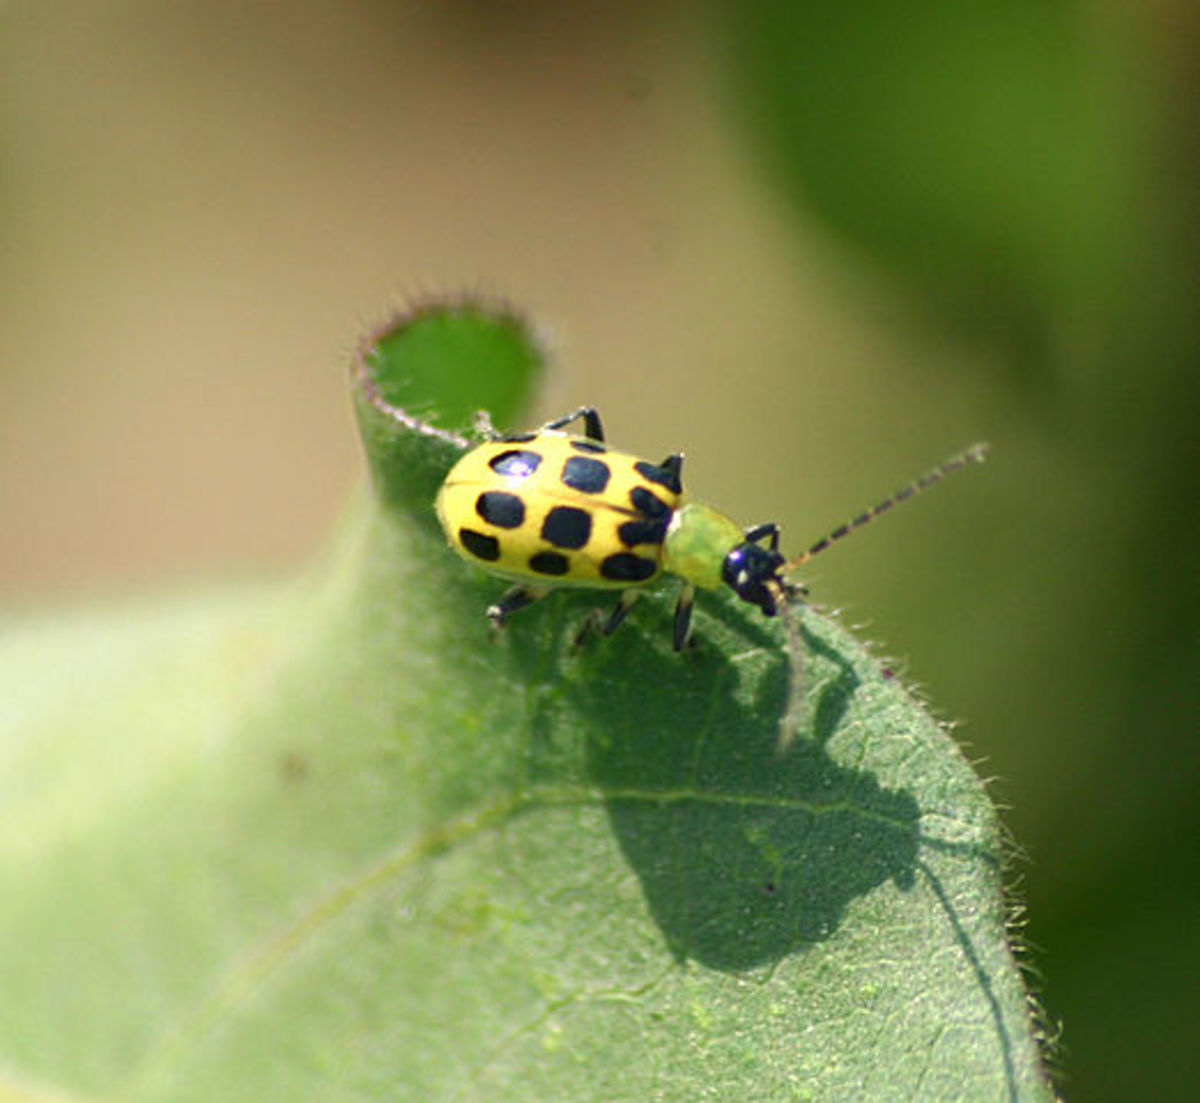 Spotted cucumber beetles are vicious insect predators in watermelon patches.